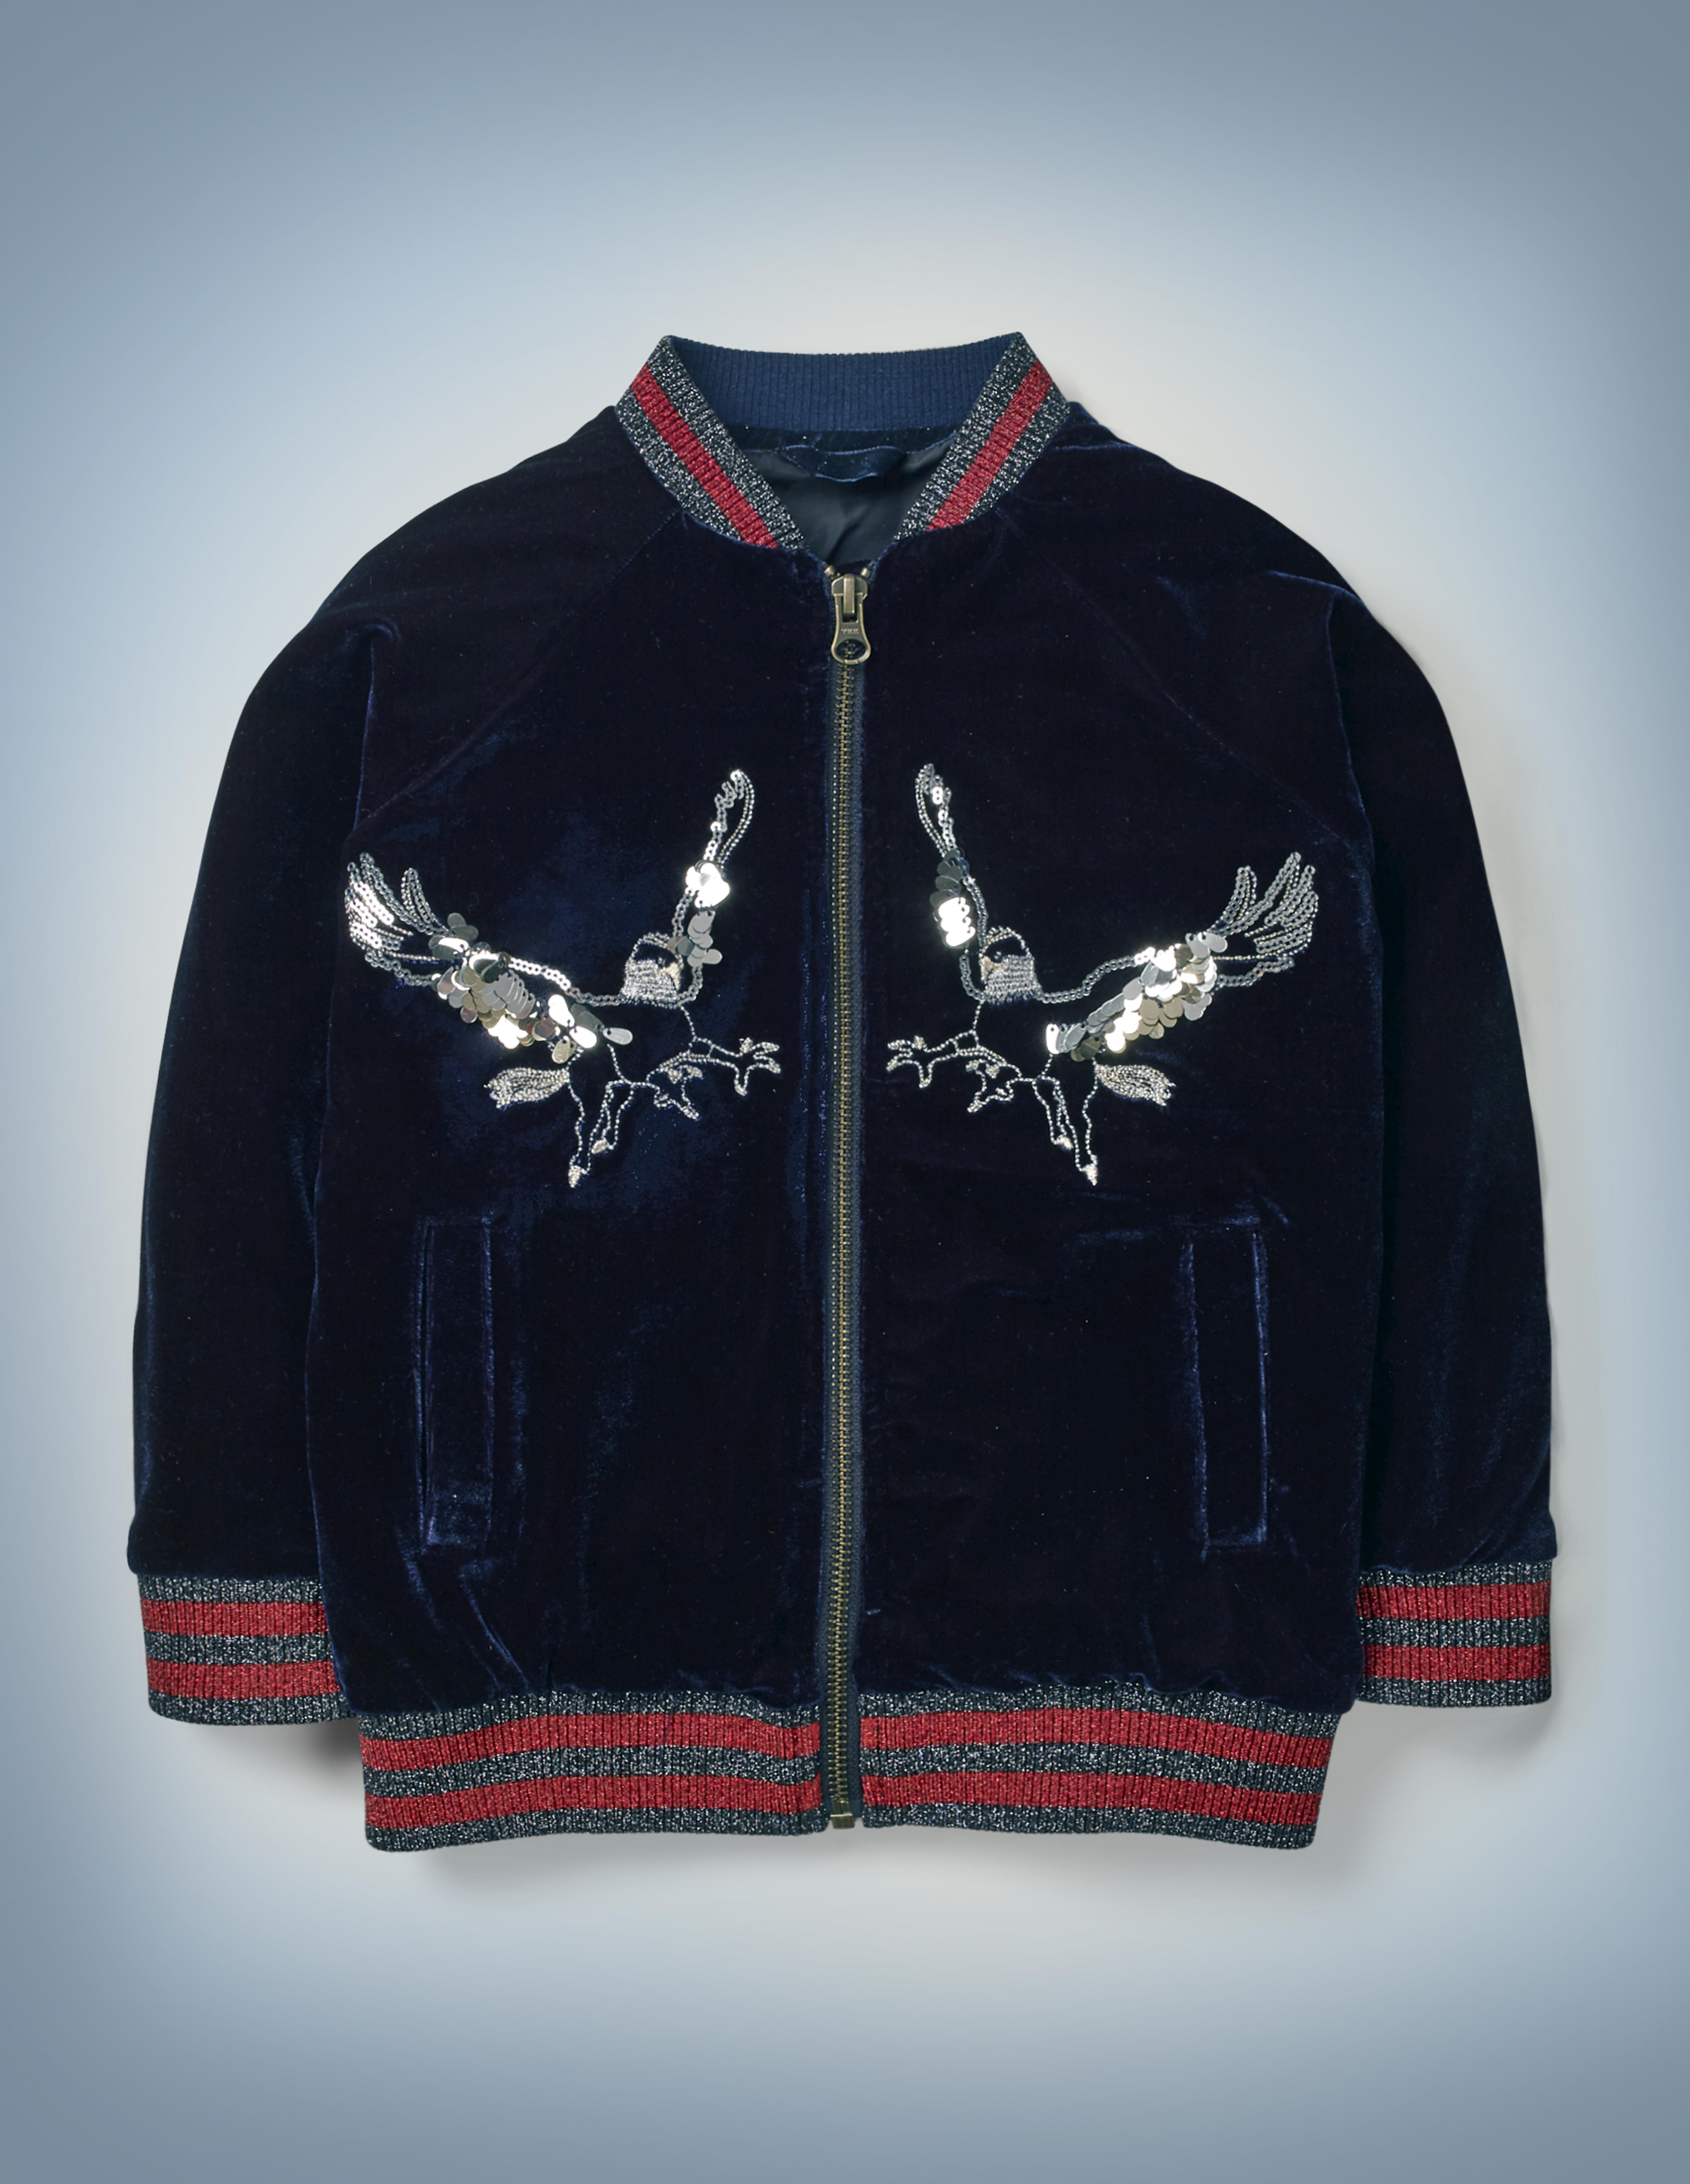 The Mini Boden Hippogriff Bomber Jacket in blue features a double-breasted, silver-sequined design of a hippogriff against the deep blue of the jacket, which features gray-and-red-striped collar and cuffs. It retails between £50 and £56.